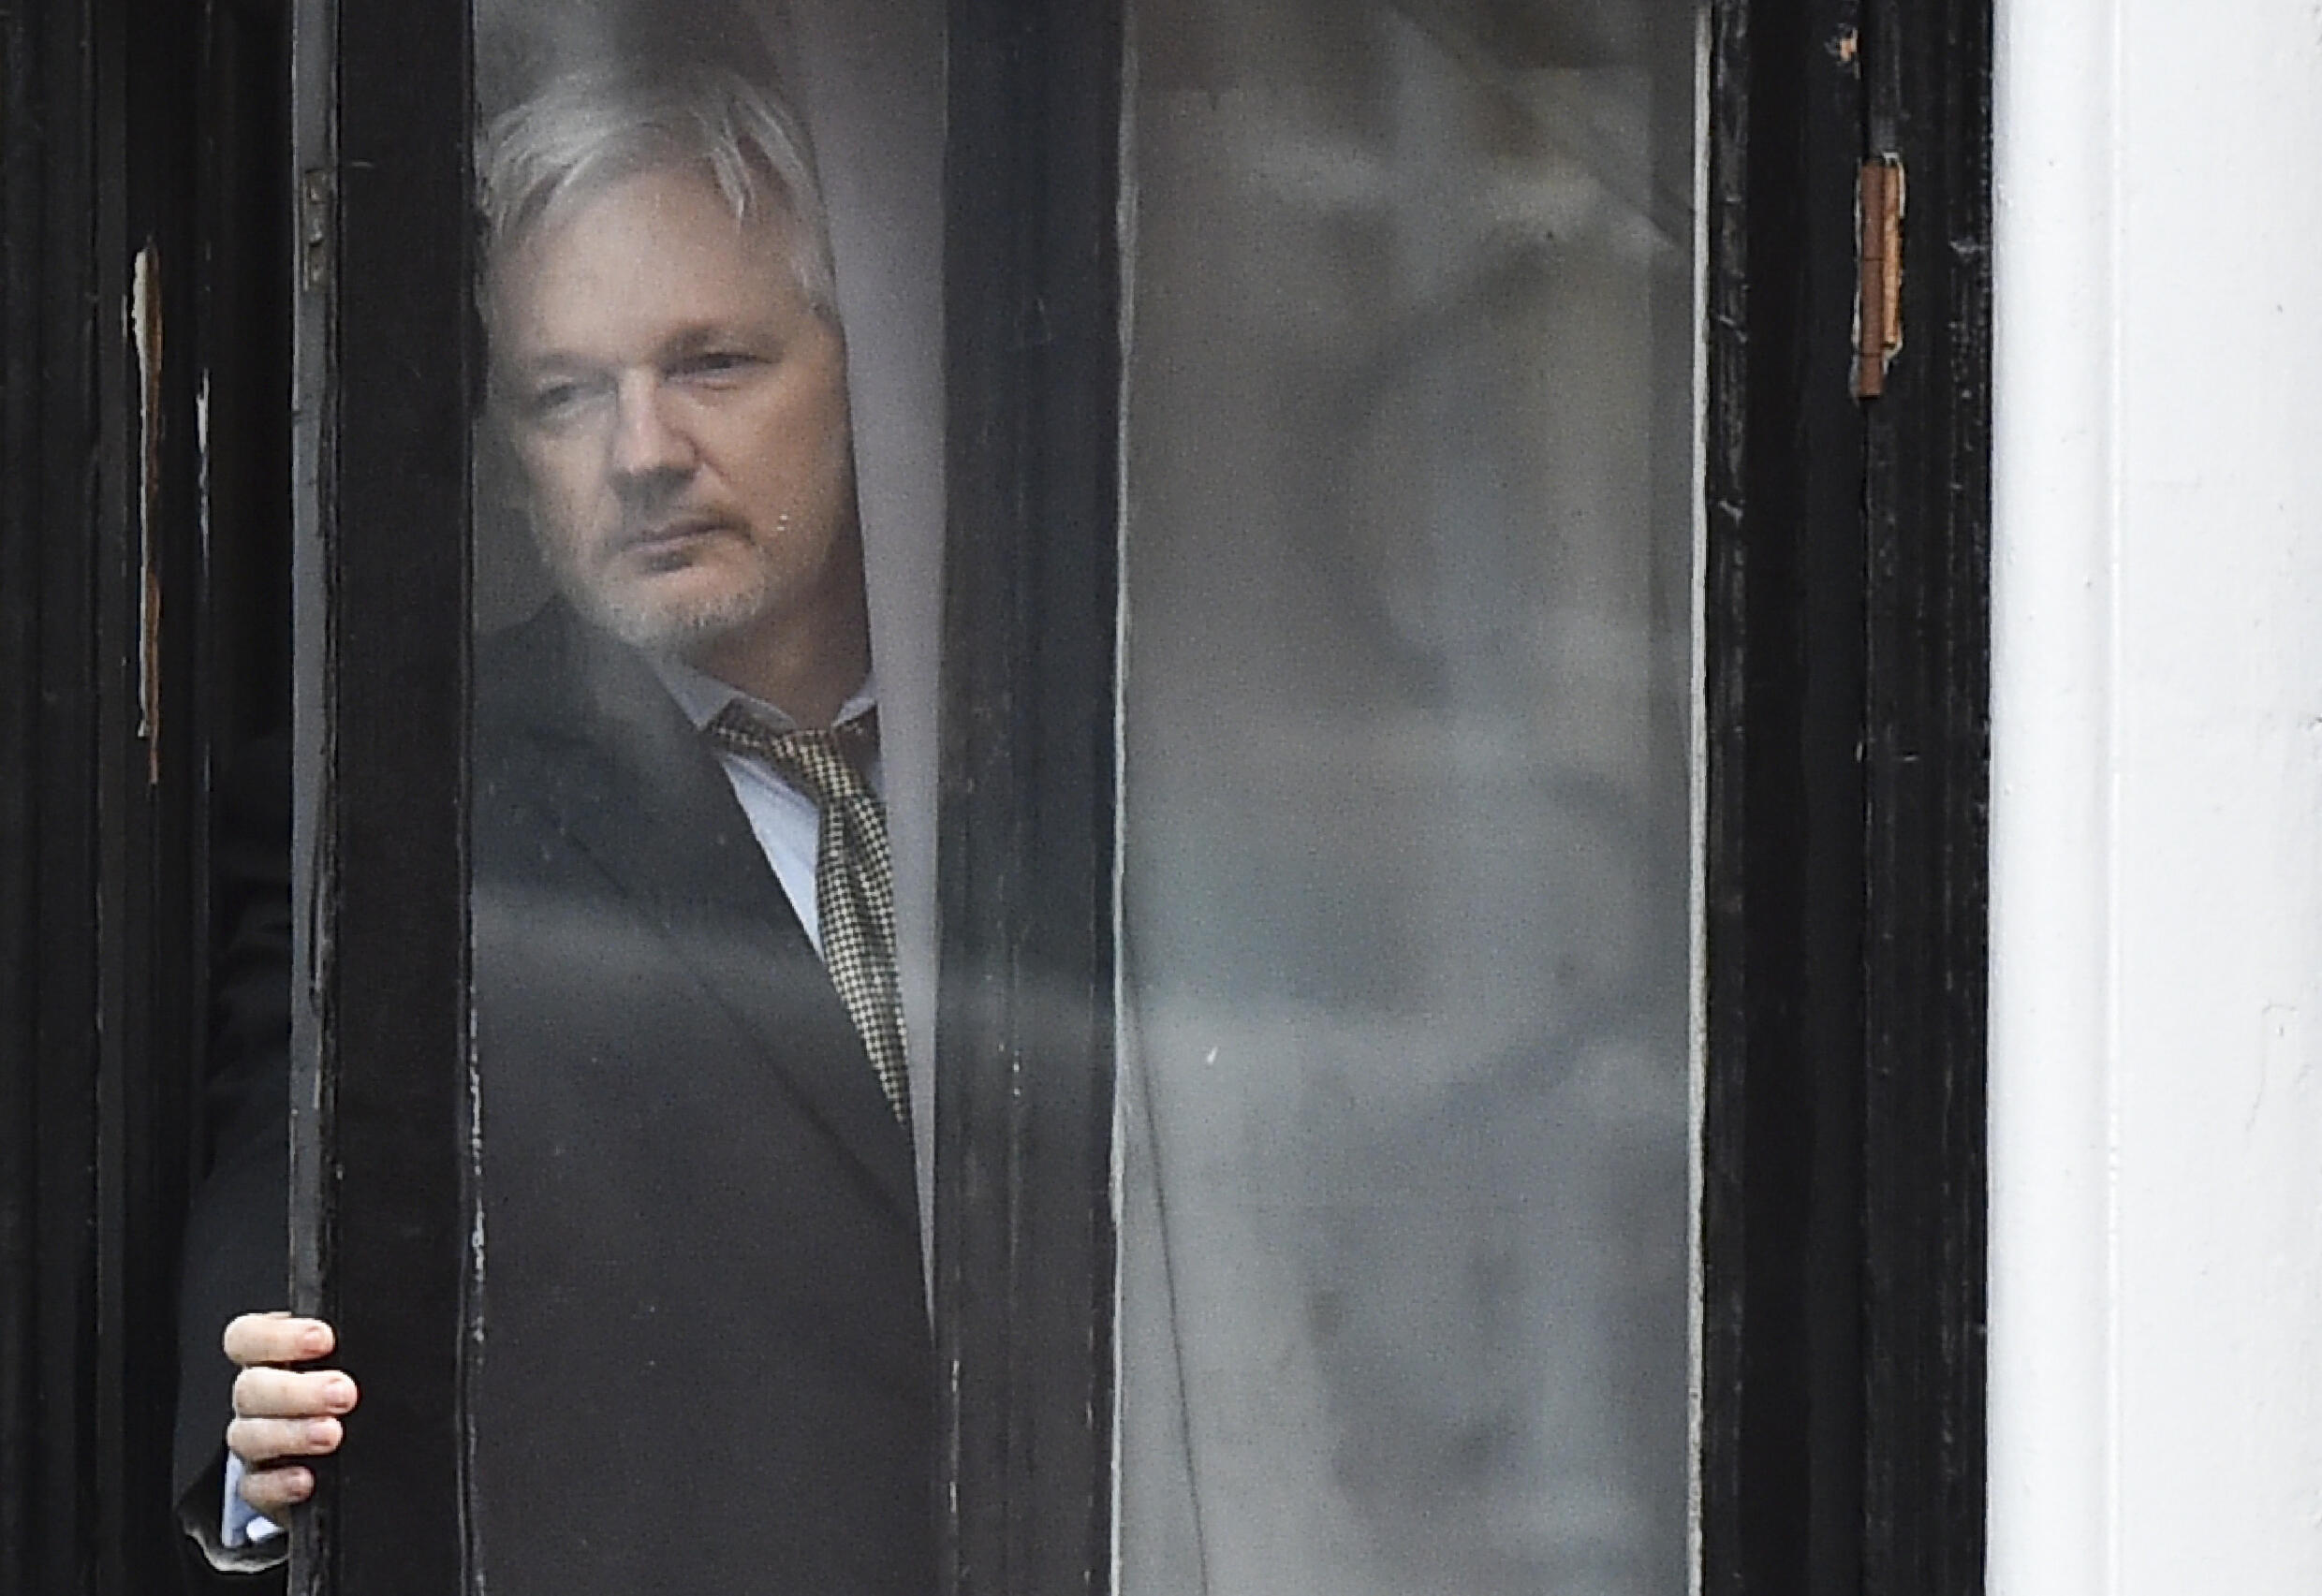 Julian Assange has spent most of the past decade either in custody or holed up in Ecuador's London embassy as he has tried to avoid extradition